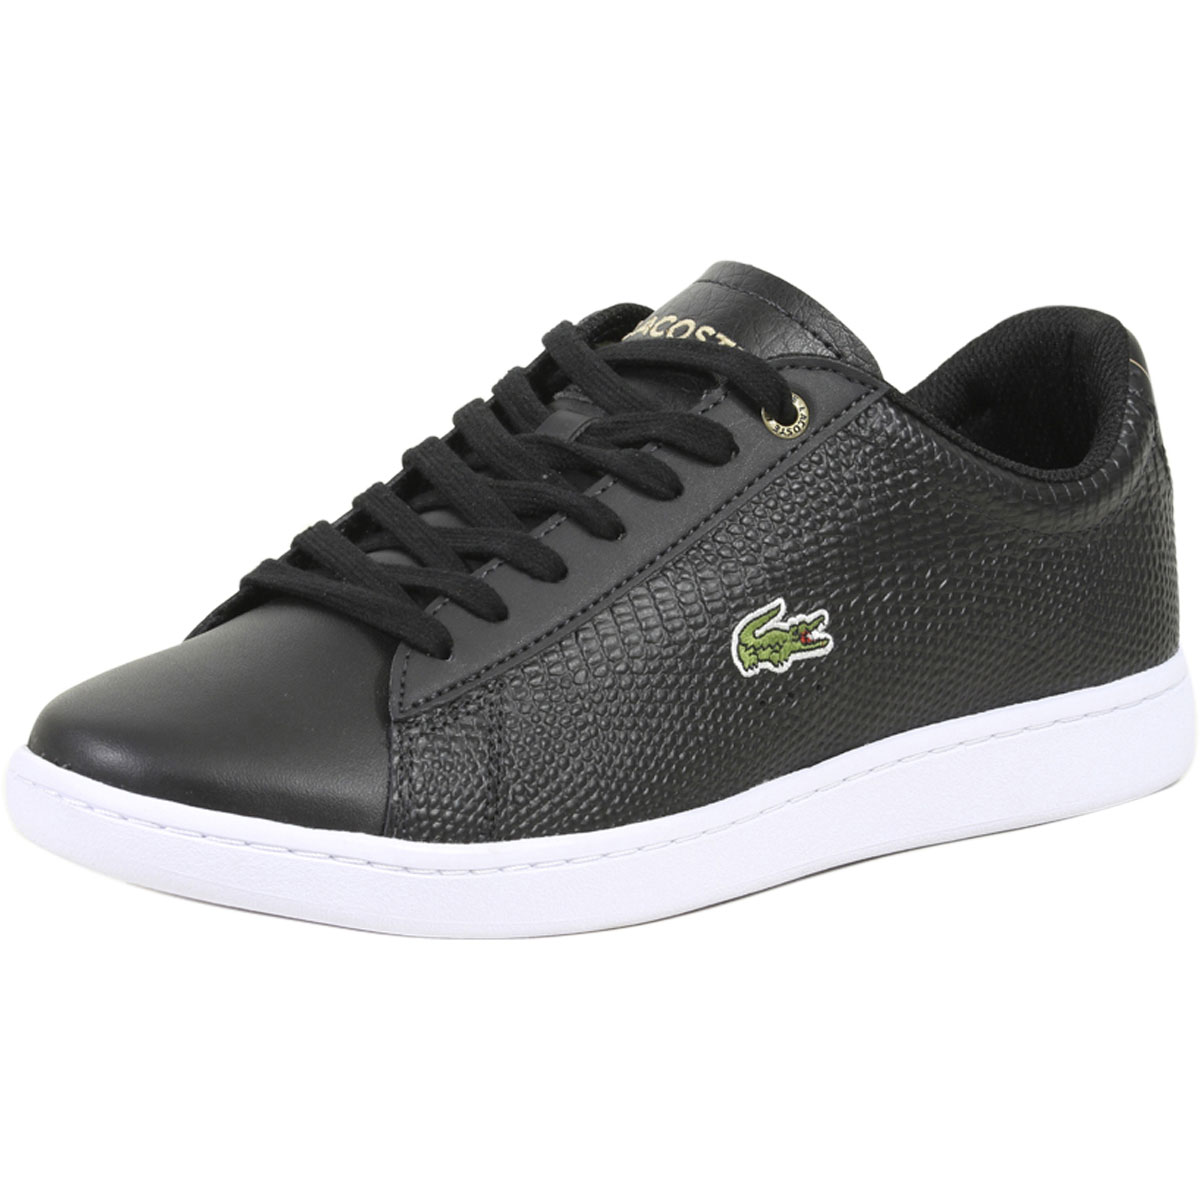 6198ac6cea Lacoste Homme Carnaby-Evo-118 Chaussures Baskets | eBay